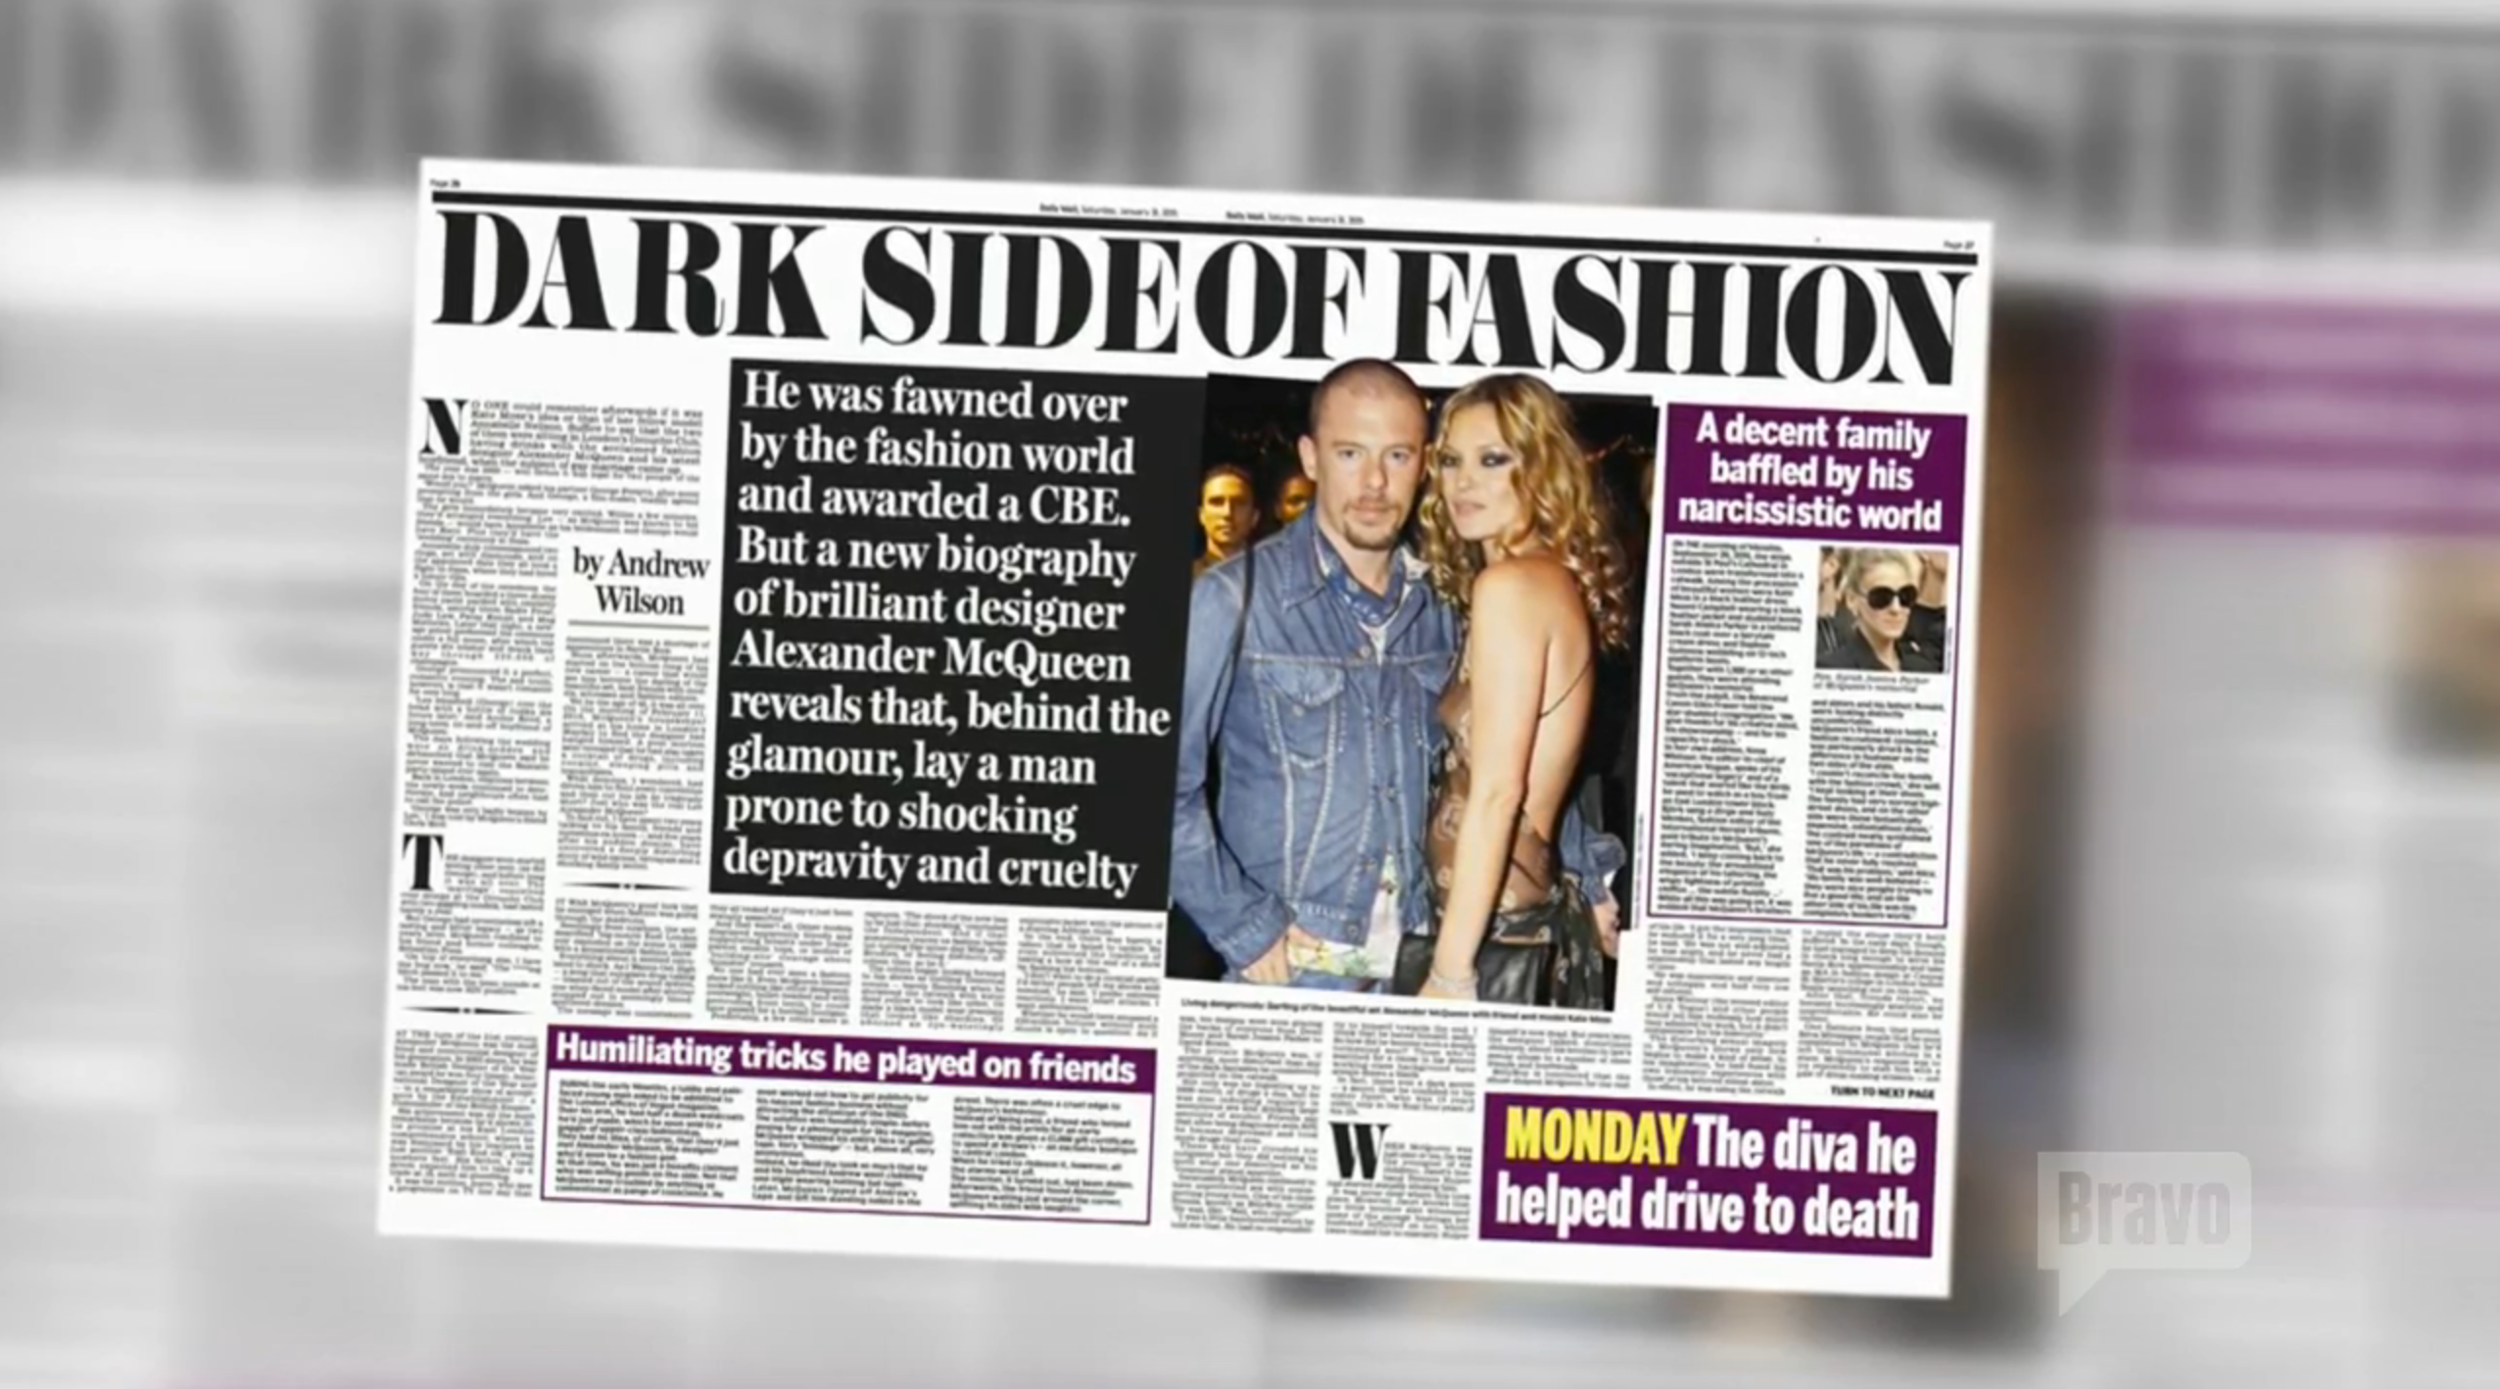 ladies-of-london-daily-mail-alexander-mcqueen-article